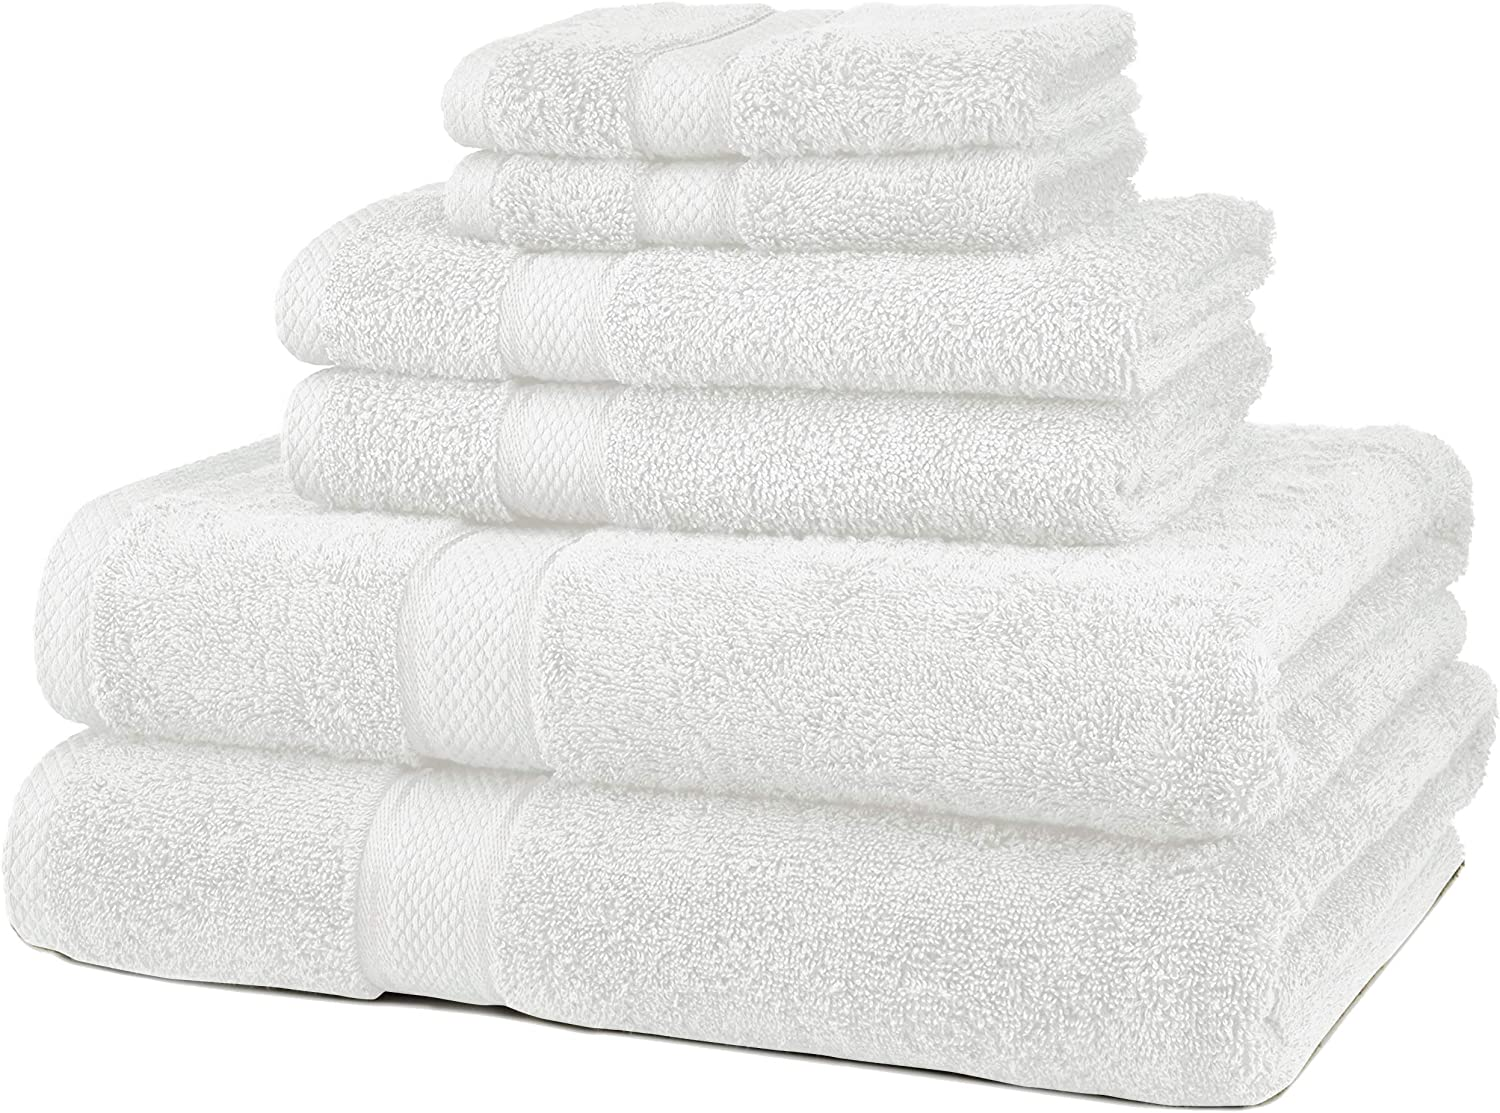 Pinzon 6 Piece Blended Egyptian Cotton Bath Towel Set - White: Home & Kitchen